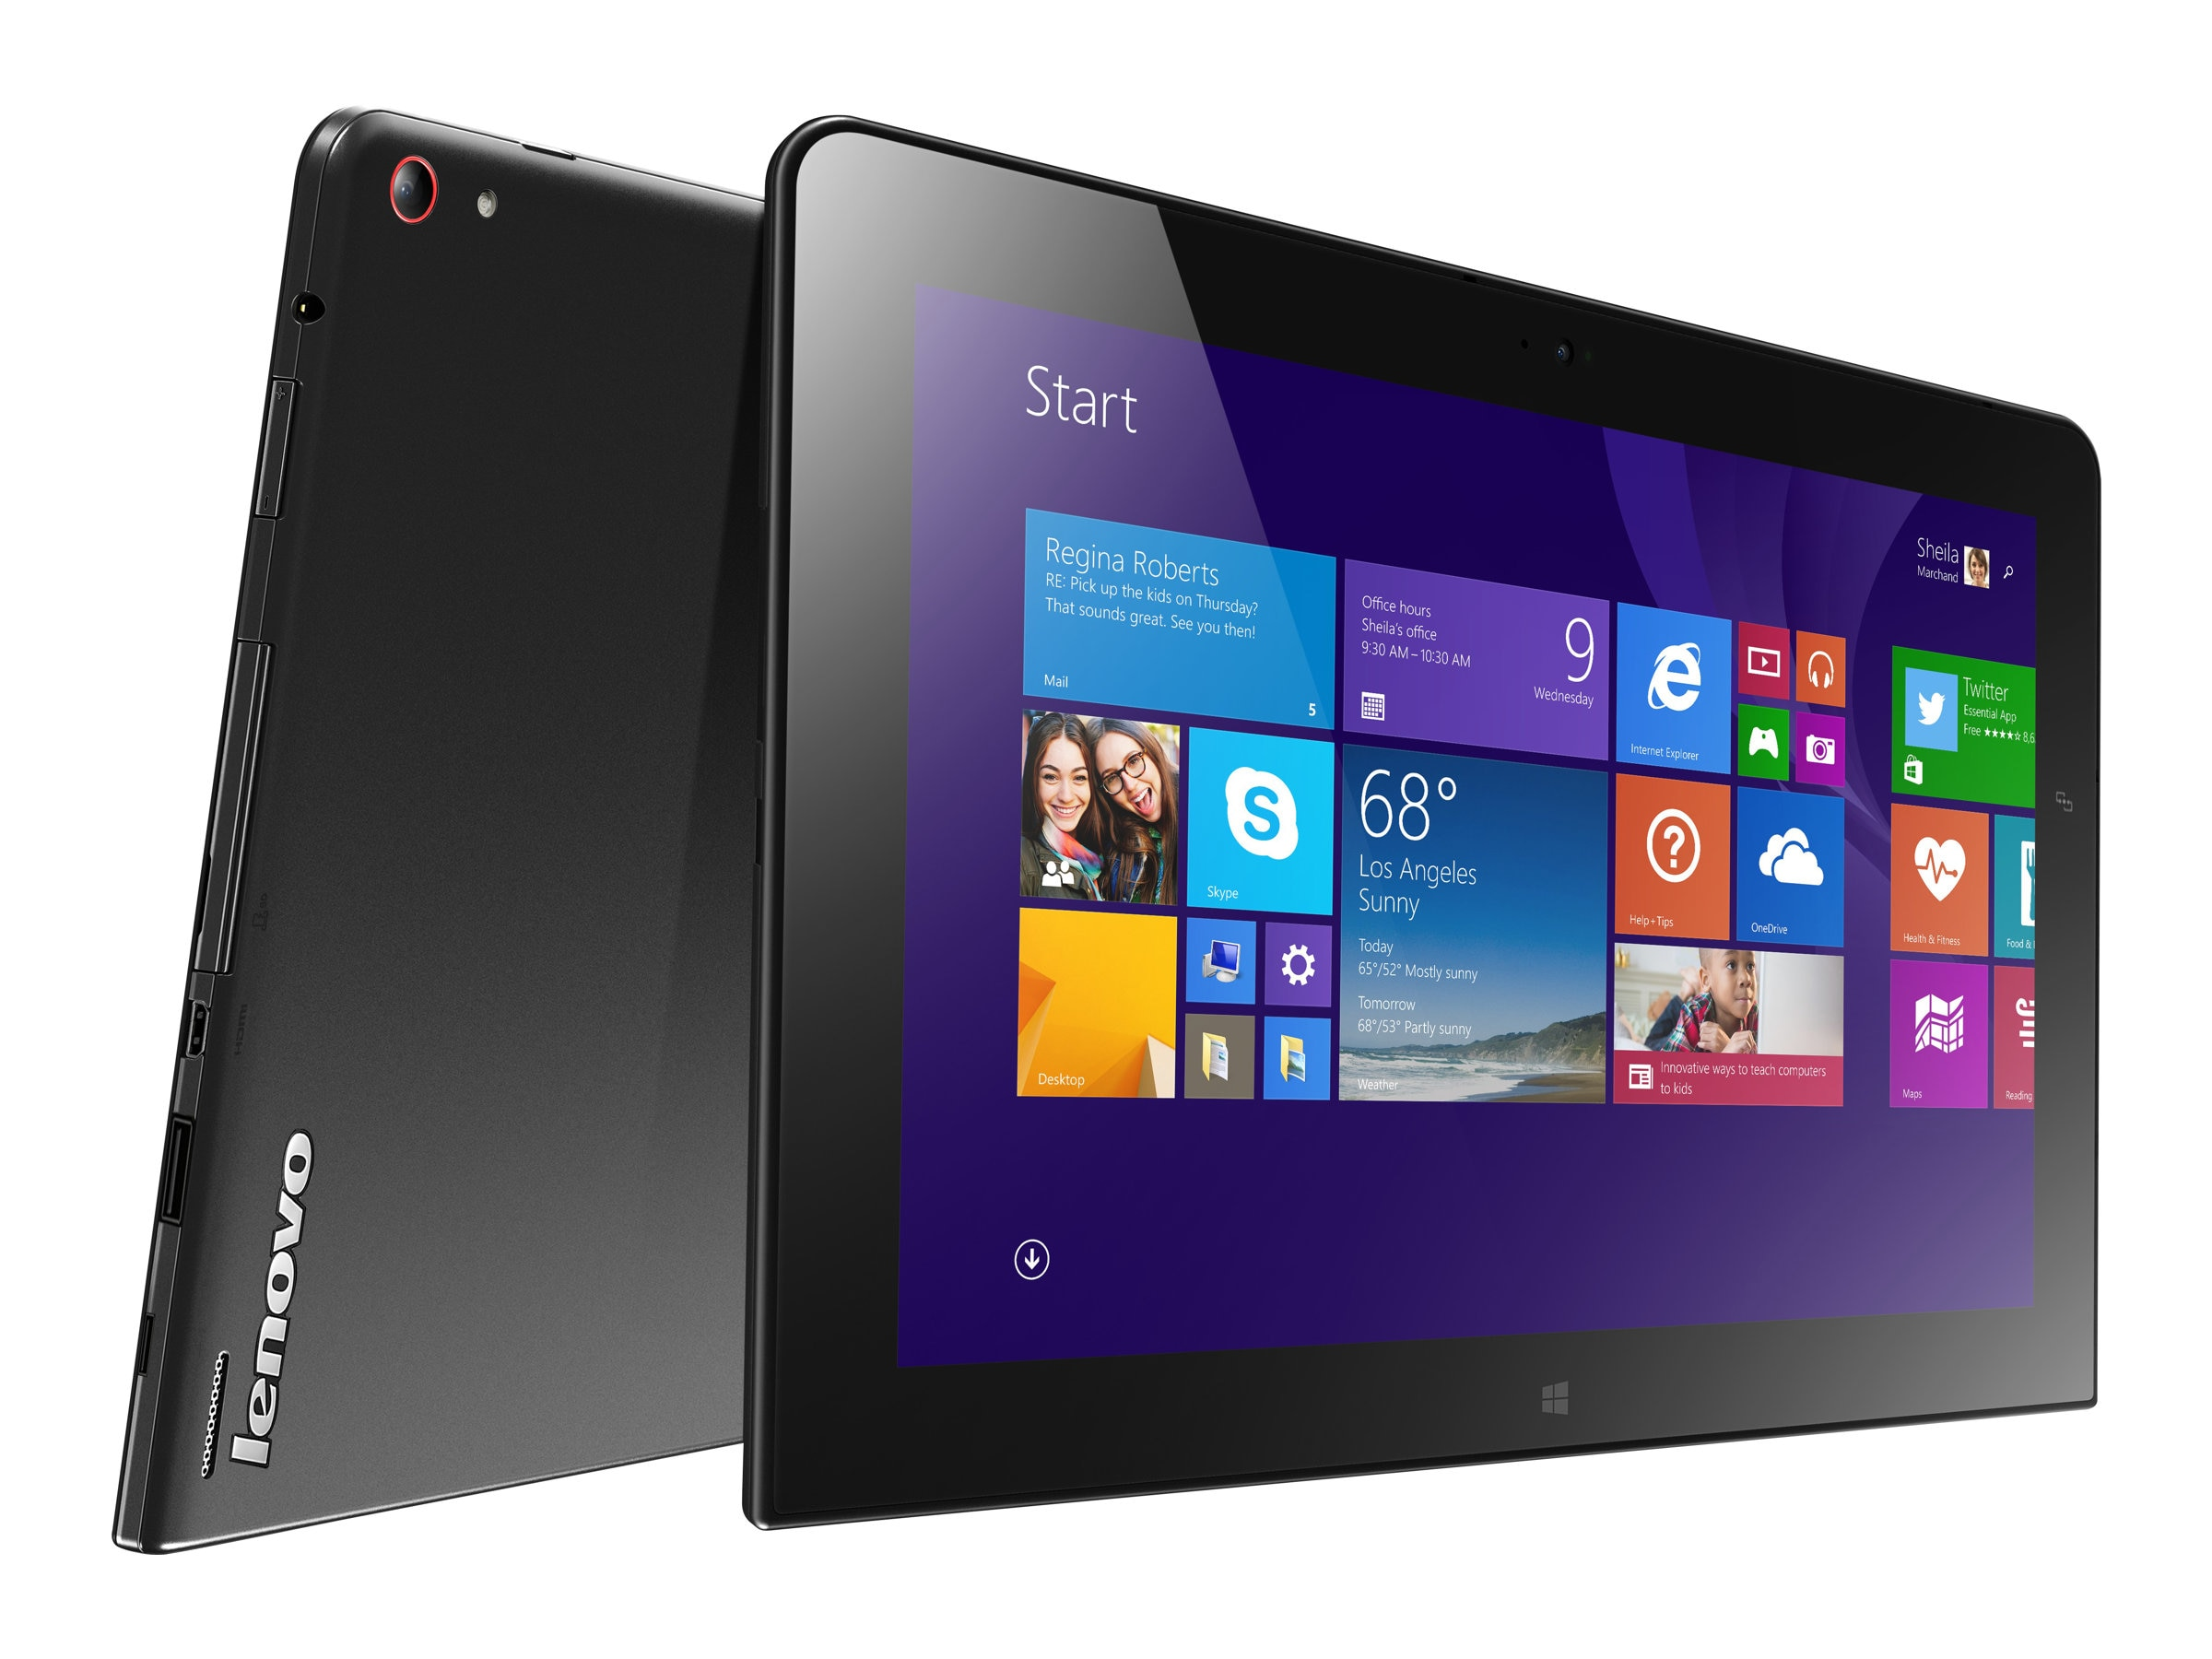 Lenovo TopSeller ThinkPad 10 1.6GHz processor Windows 8.1 Small Screen Touch (SST), 20C10001US